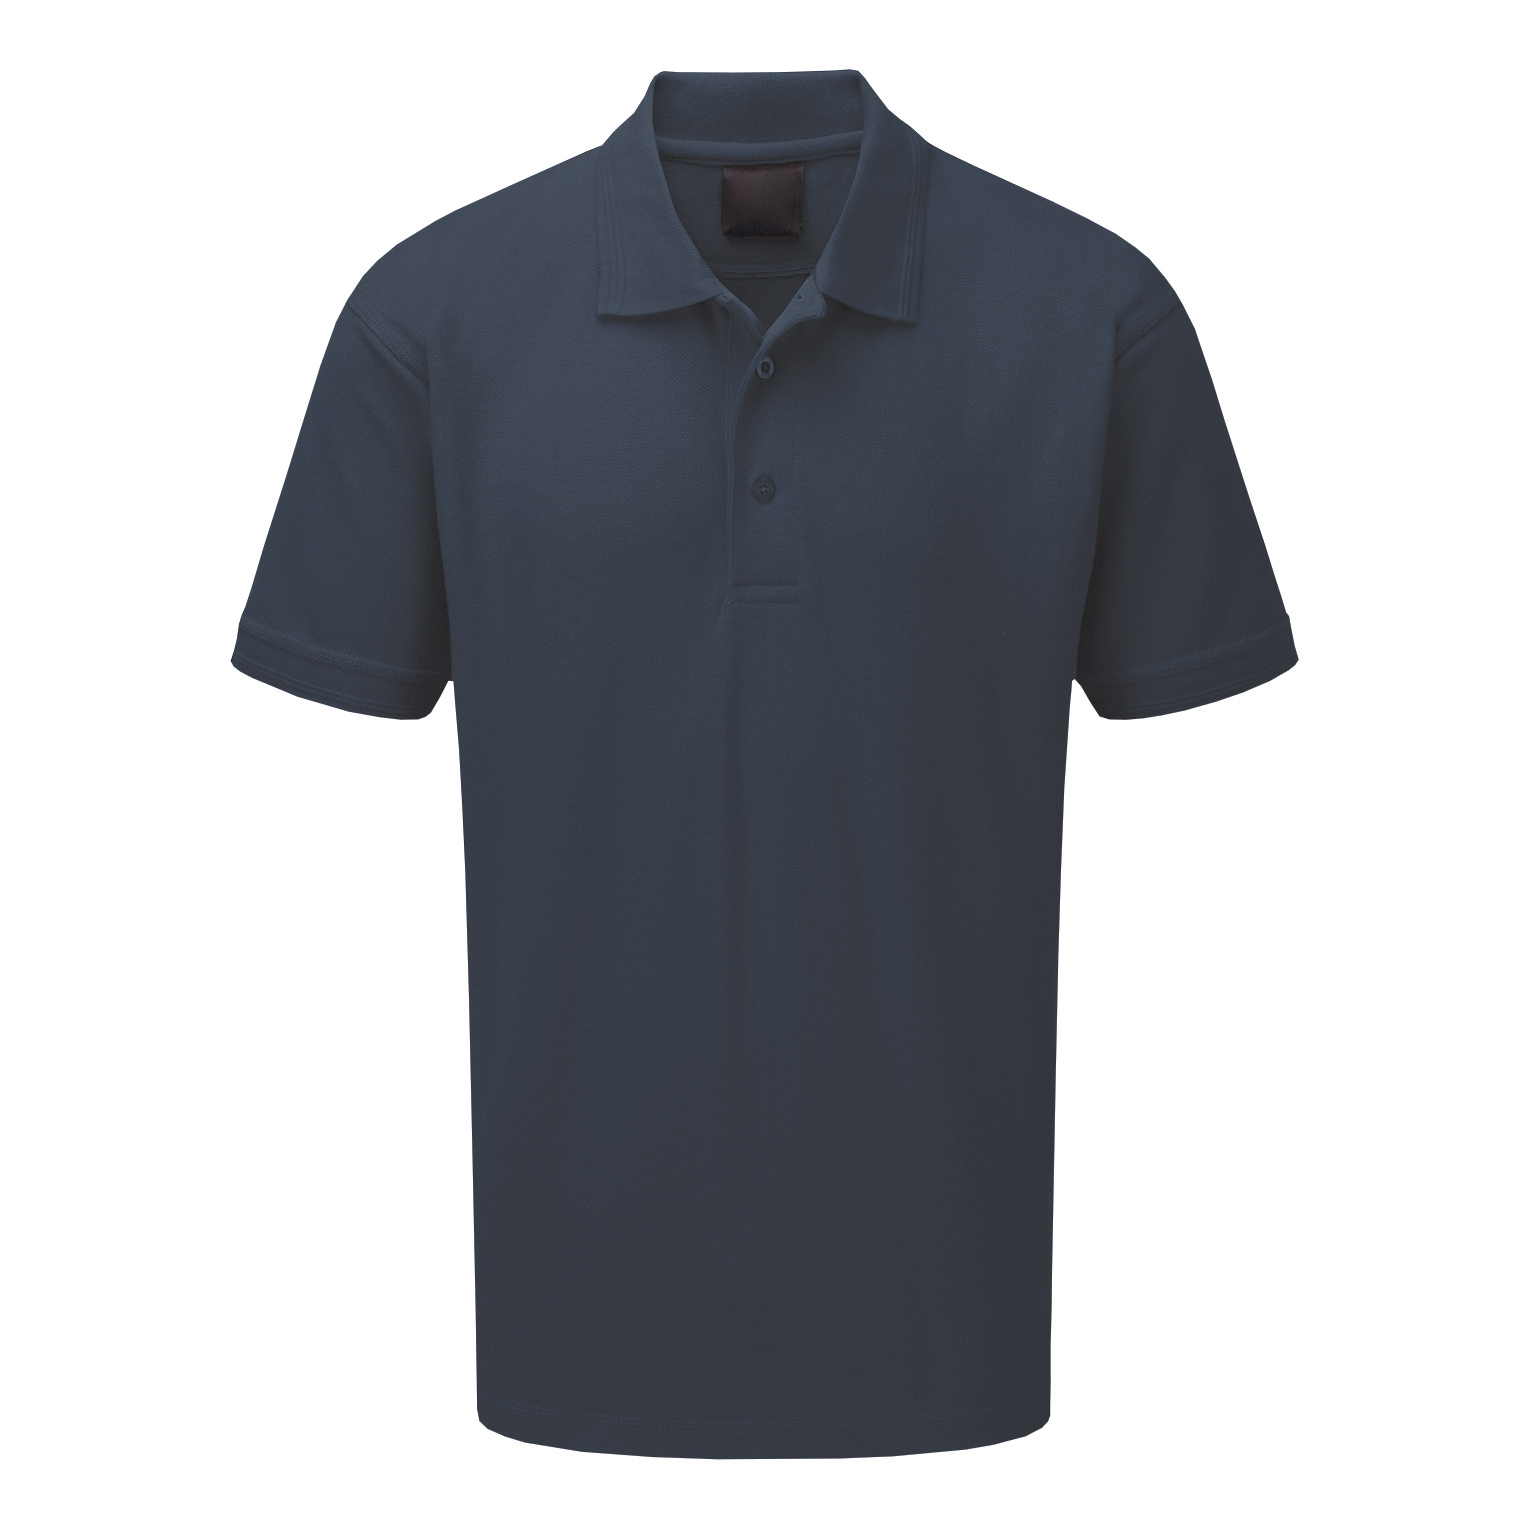 Business Polo Premium Triple Stitched Size XL Graphite